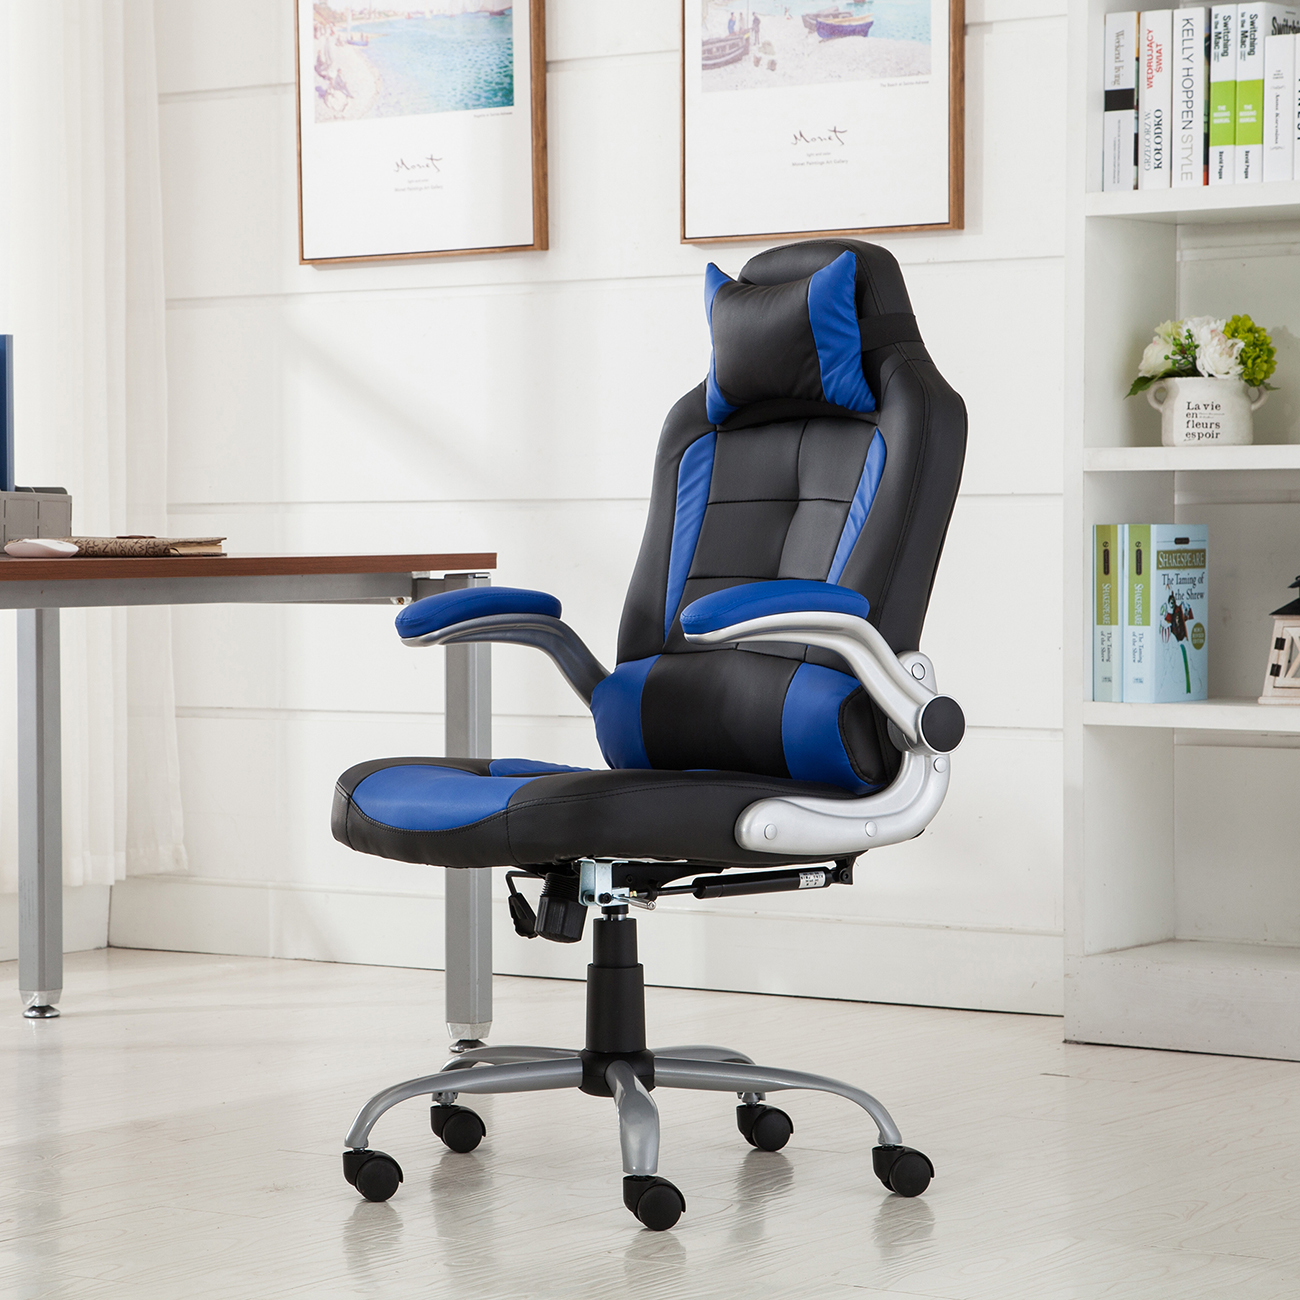 reclining gaming chair conference room table and chairs racing office back game padded headrest pu